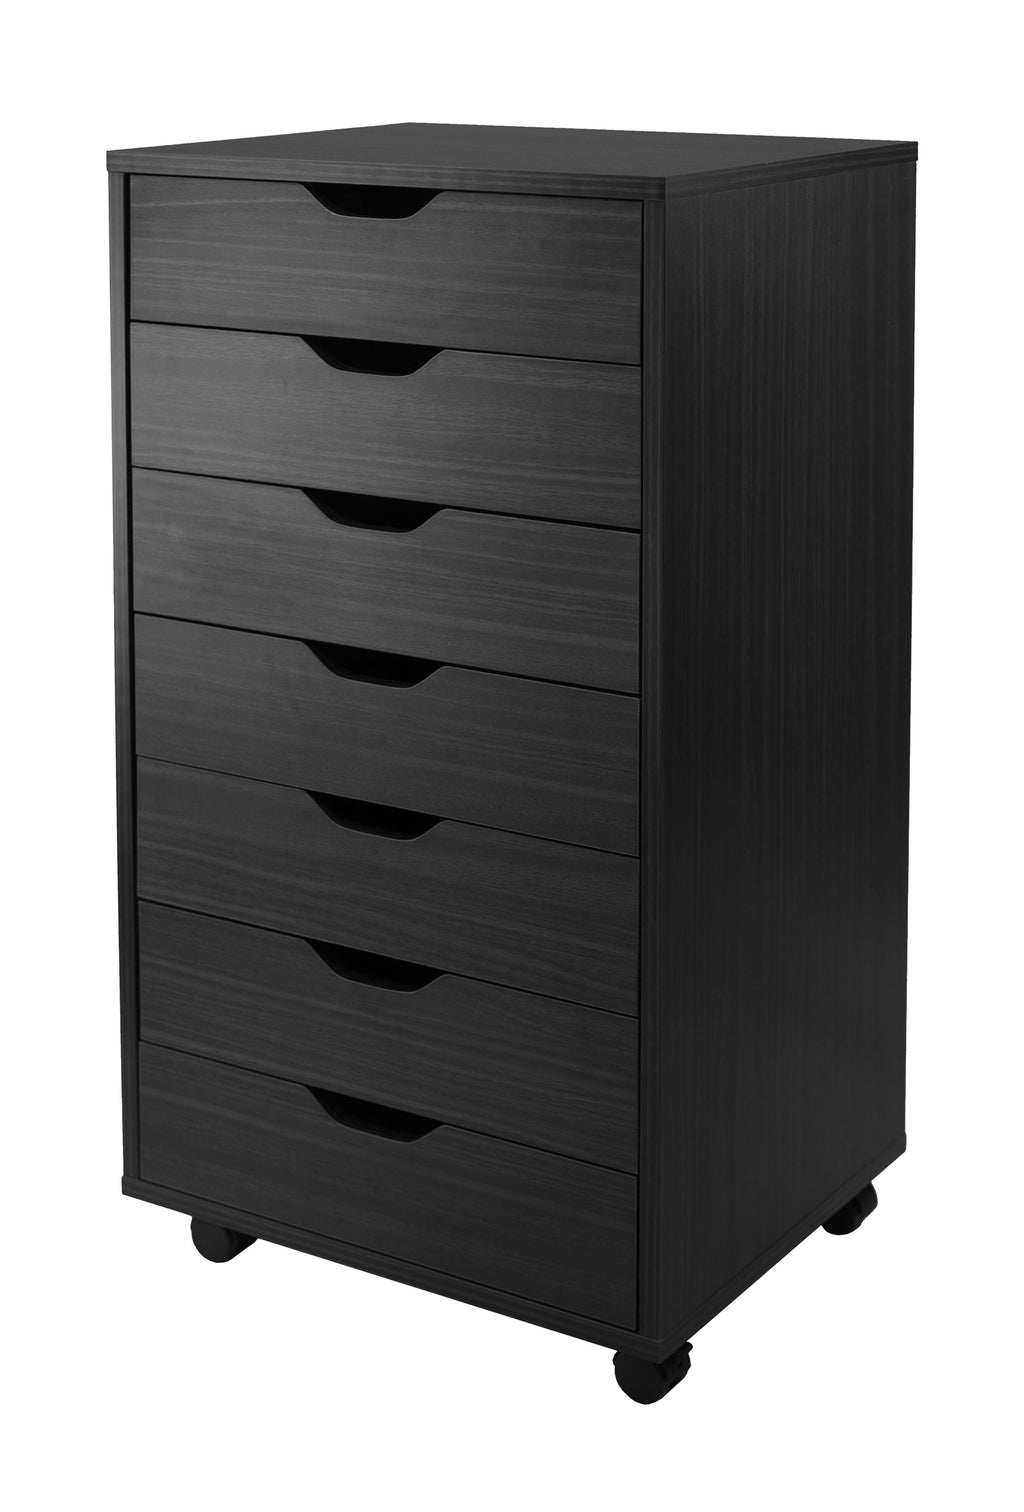 HalifaxCabinet, Black, 7-Drawer - Pot Racks Plus